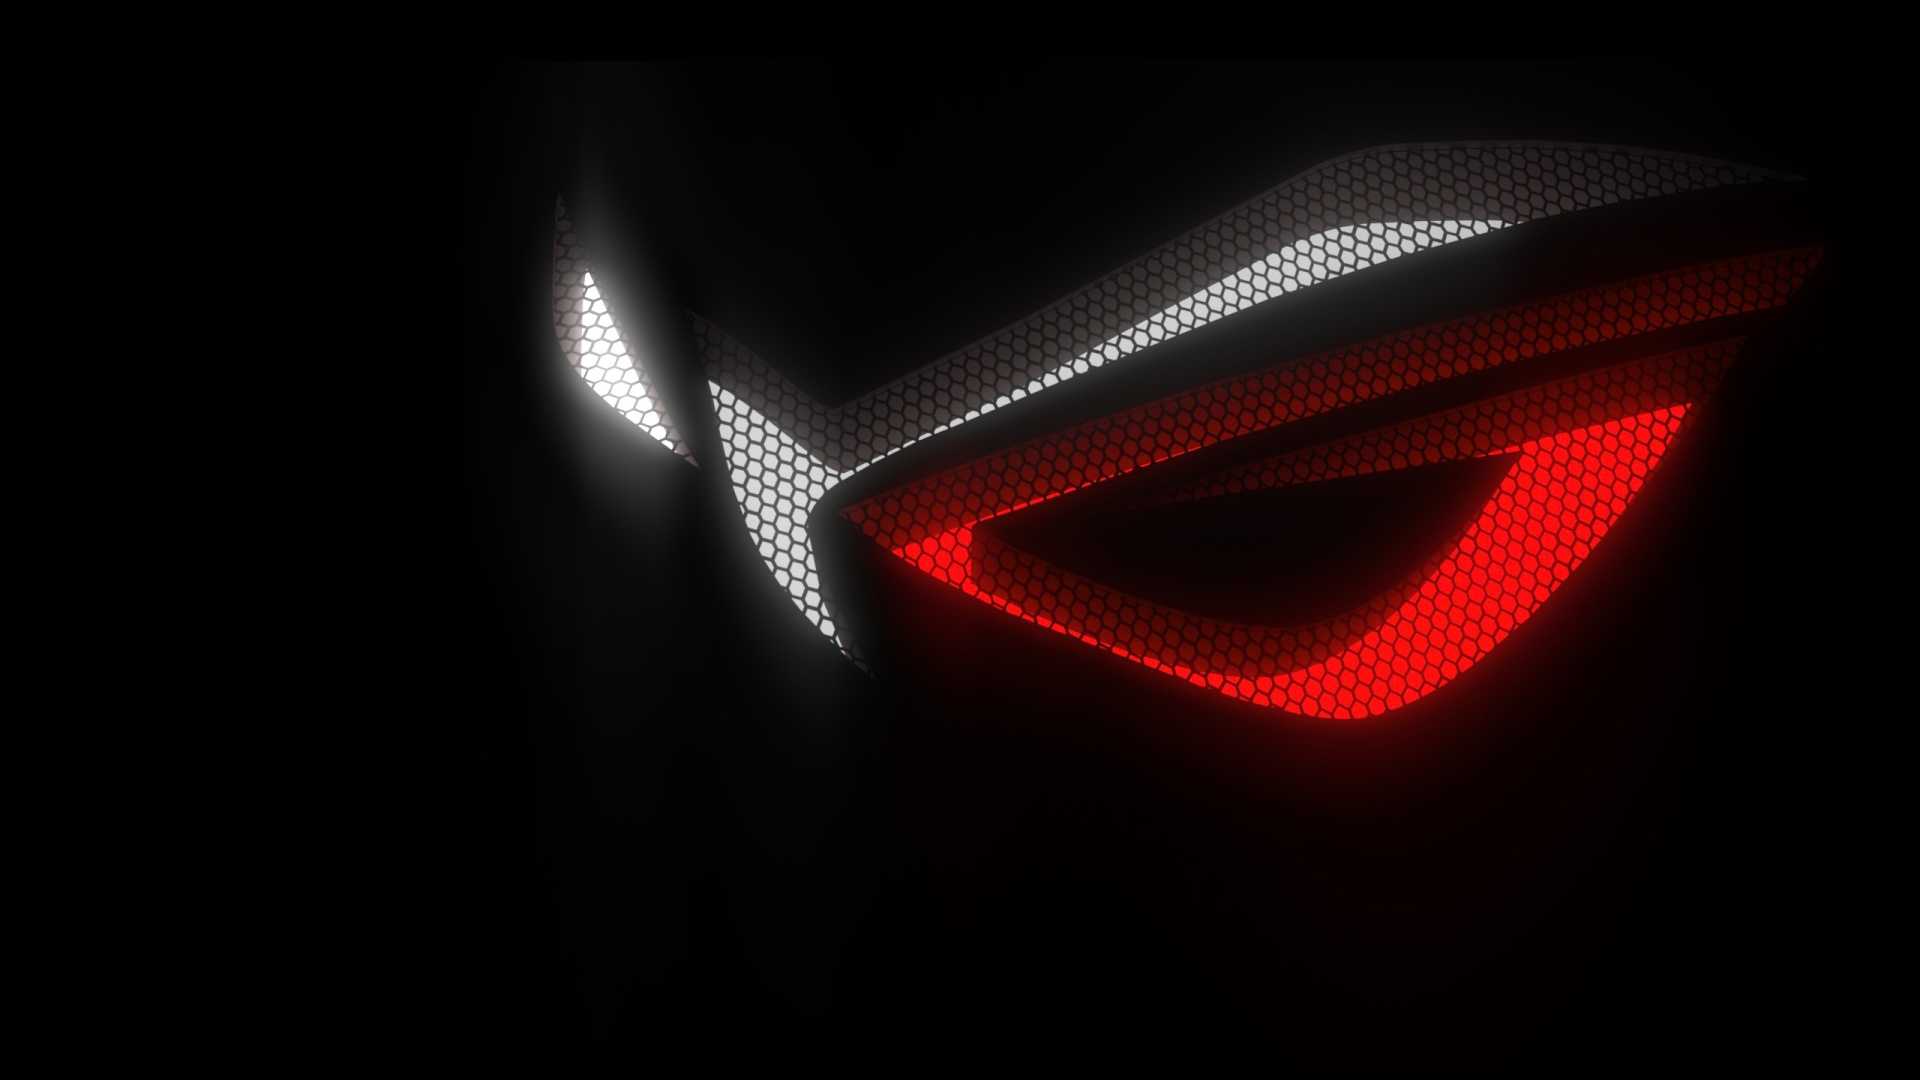 asus rog republic of gamers logo hex background hd 1920x1080 1080p 1920x1080